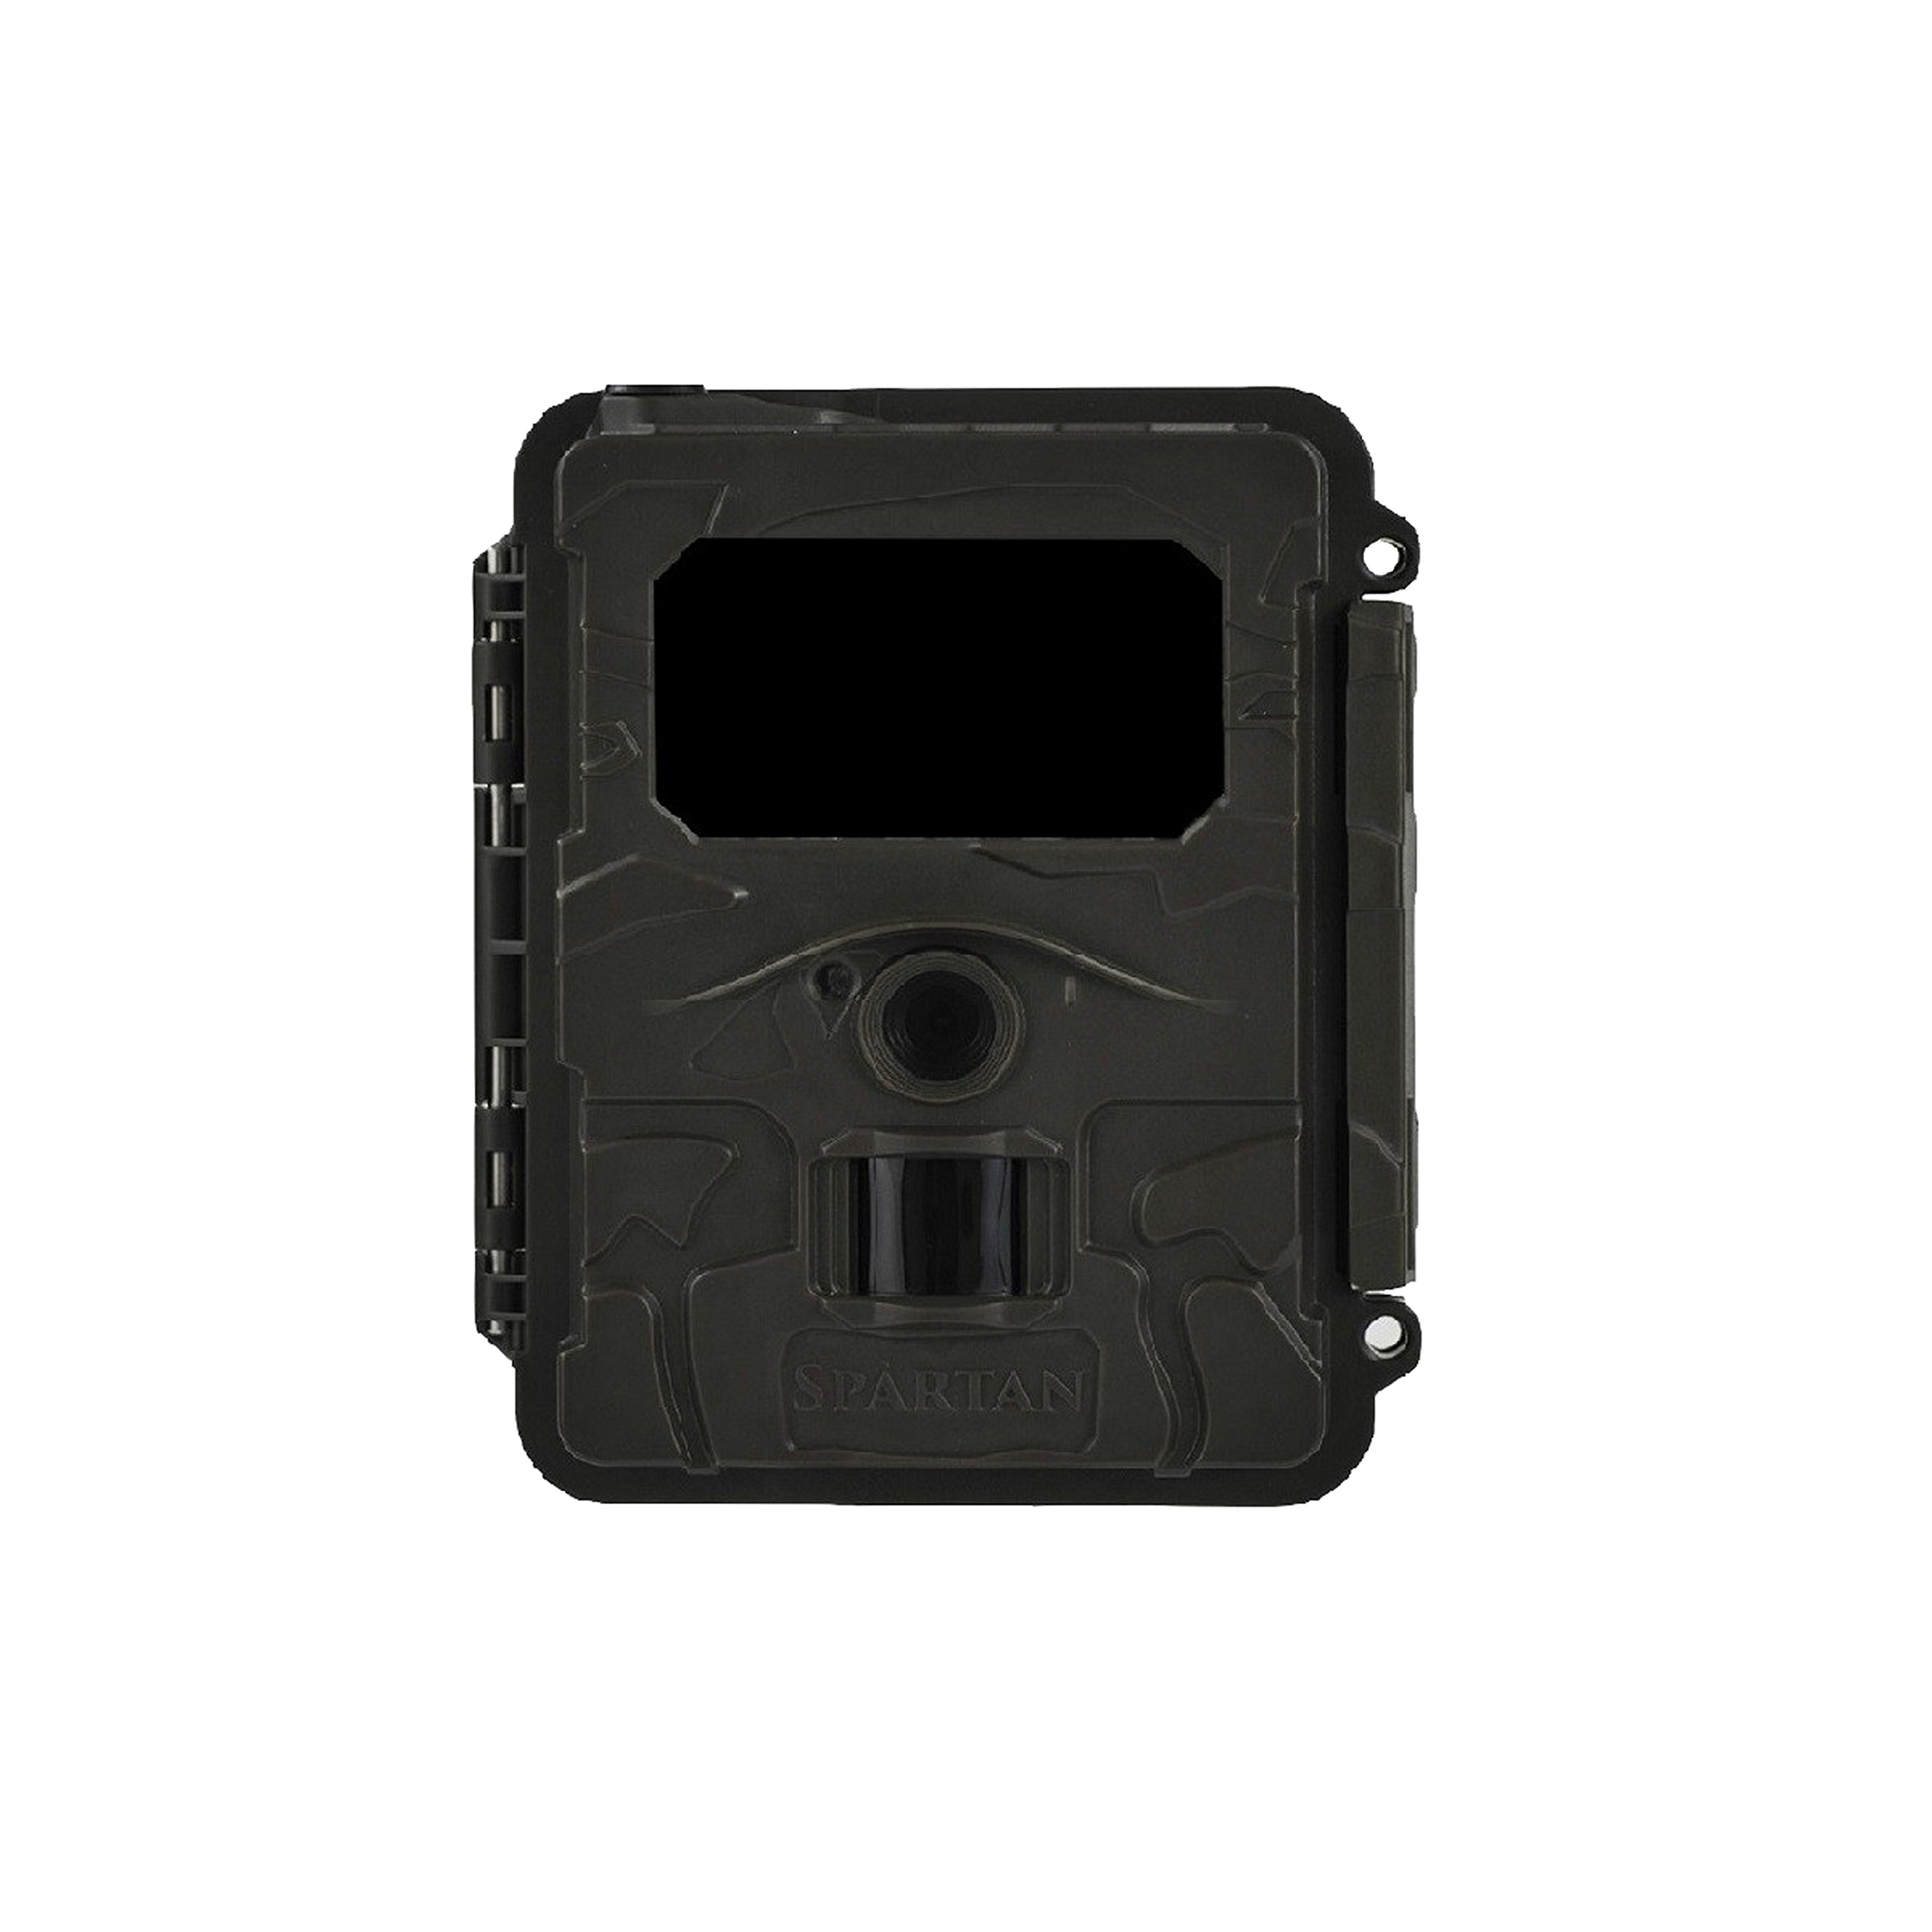 HCO Outdoor Products HD Blackout Flash Camera with Color Display, Green by HCO Outdoor Products (Image #1)